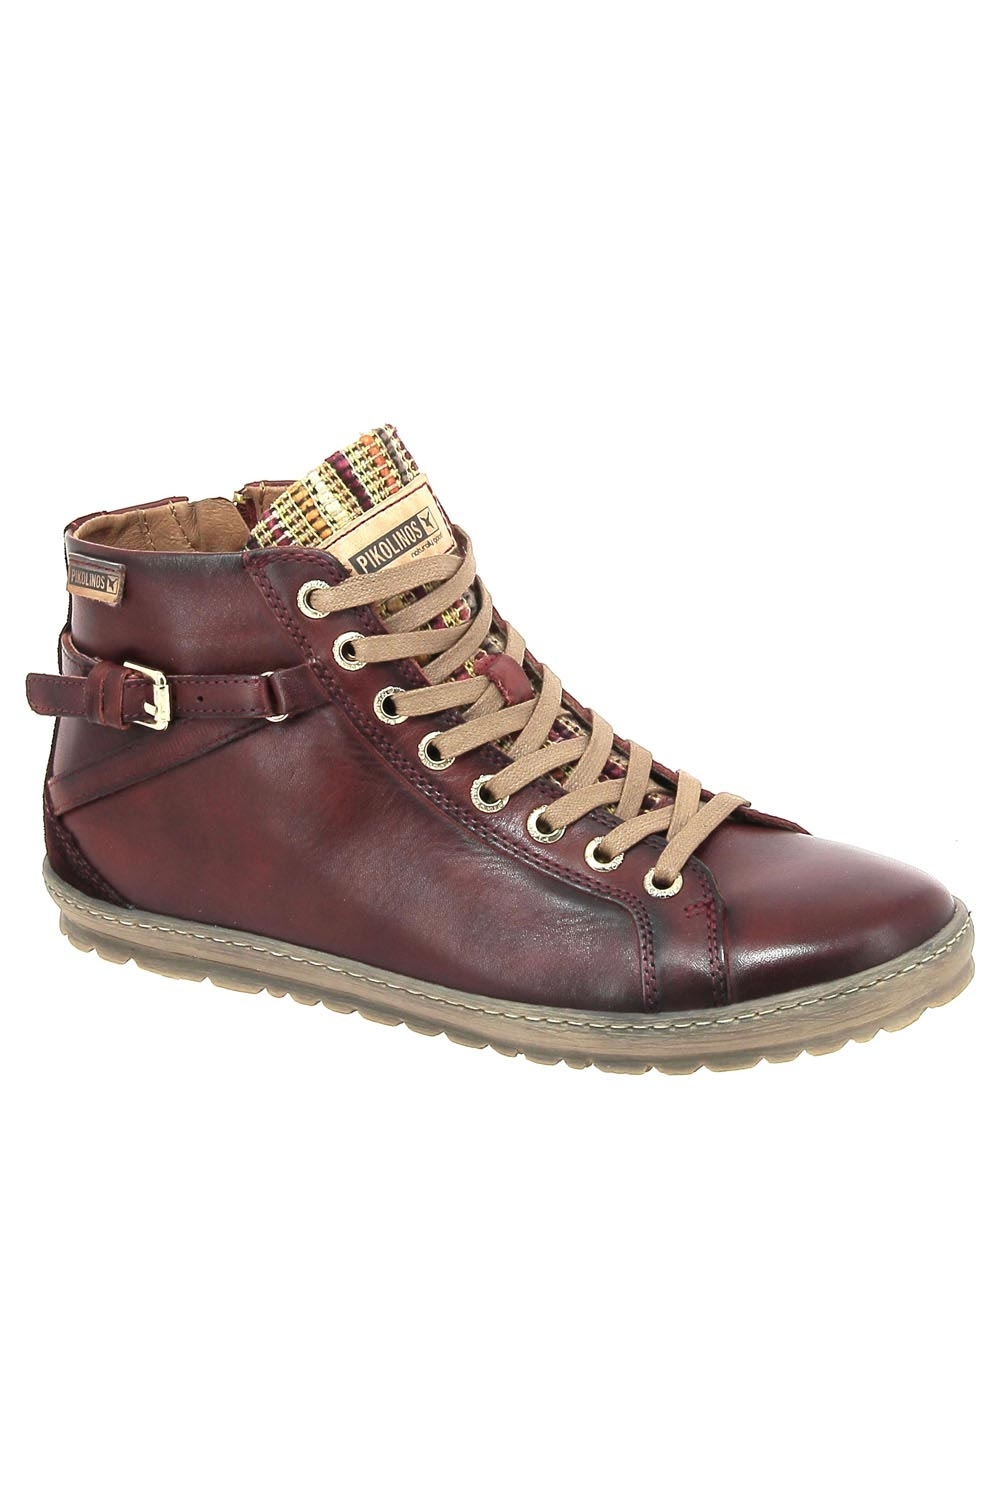 Chaussures Pikolinos Lagos beiges Casual femme a4MlyYc5Z4